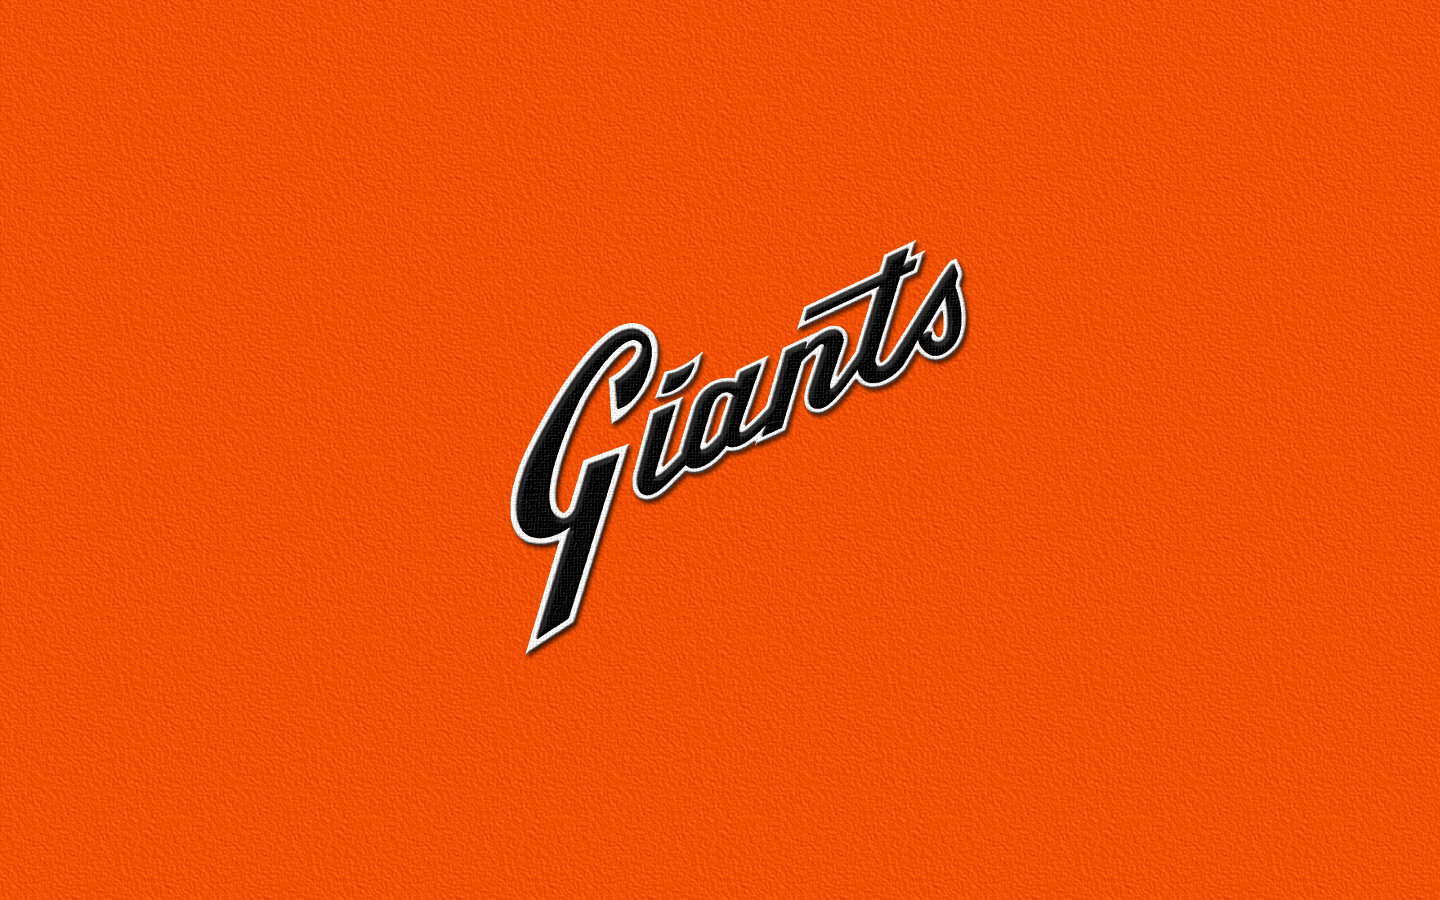 SF Giants hd wallpapers | What Wallpaper